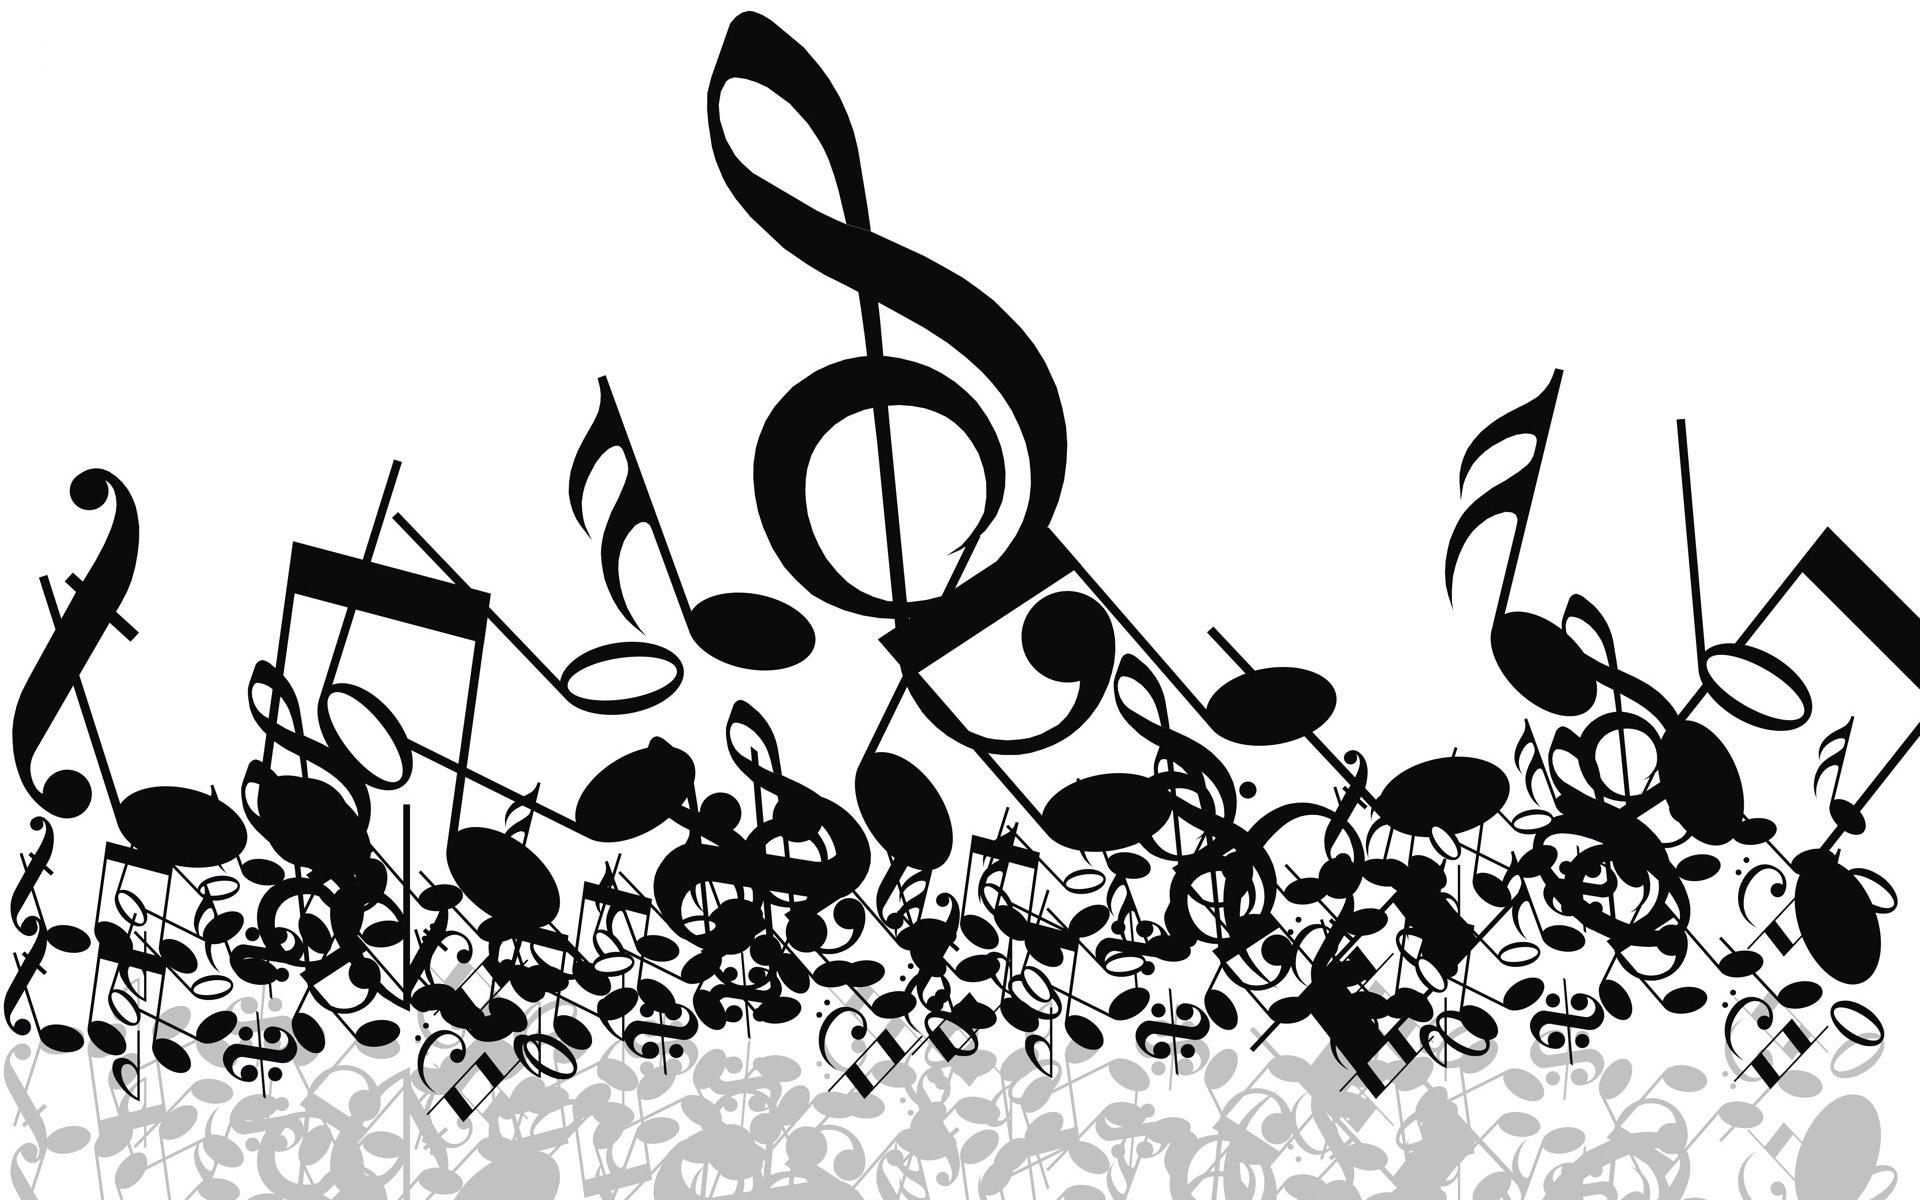 hight resolution of free spring concert clipart band image 2